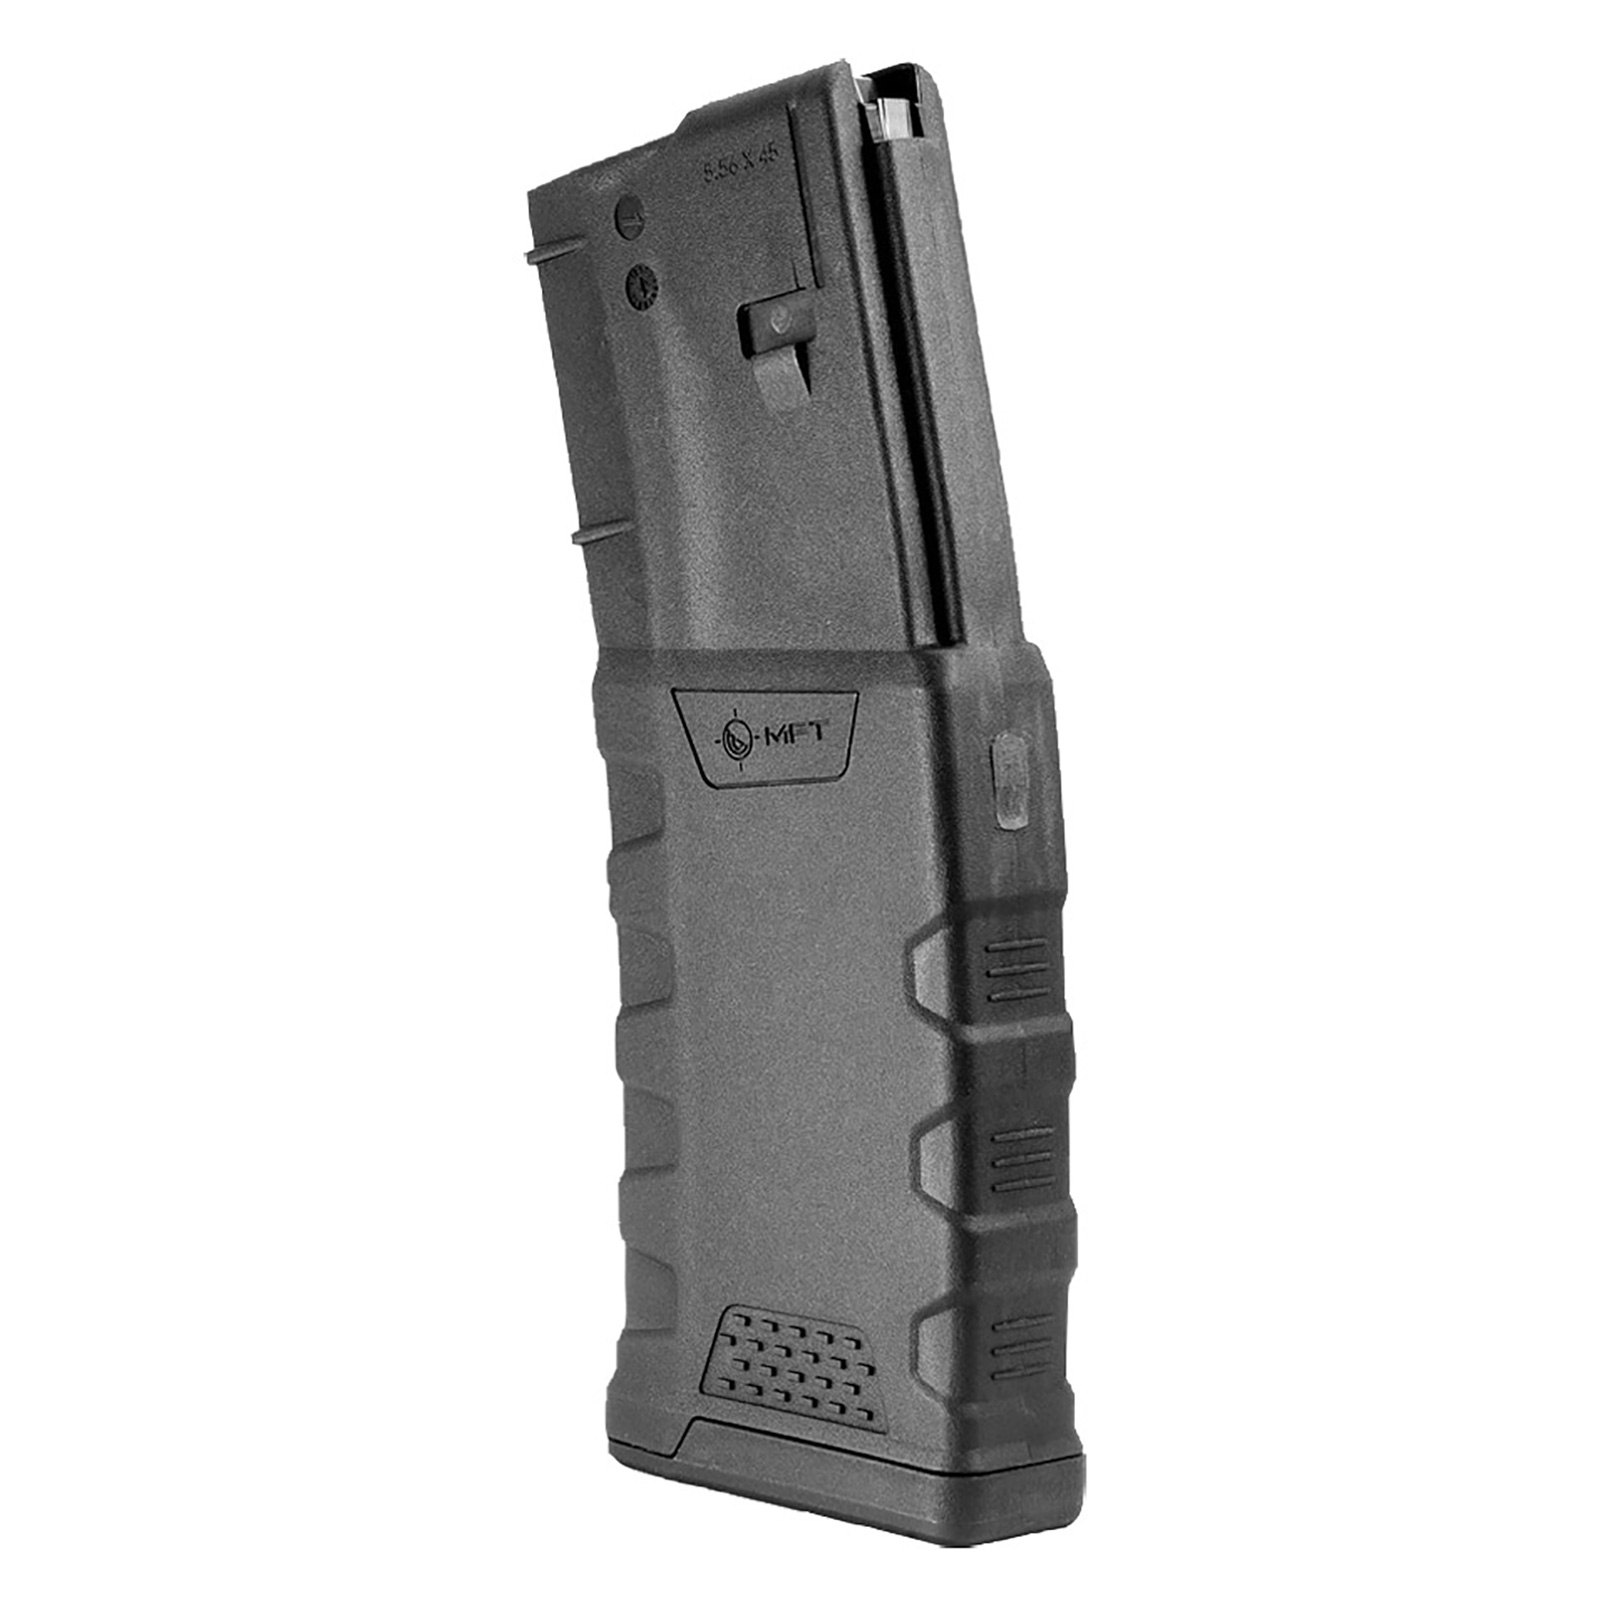 mission-first-tactical-extreme-duty-polymer-mag-30-rd-ar15-5-56x45mm-223-300aac